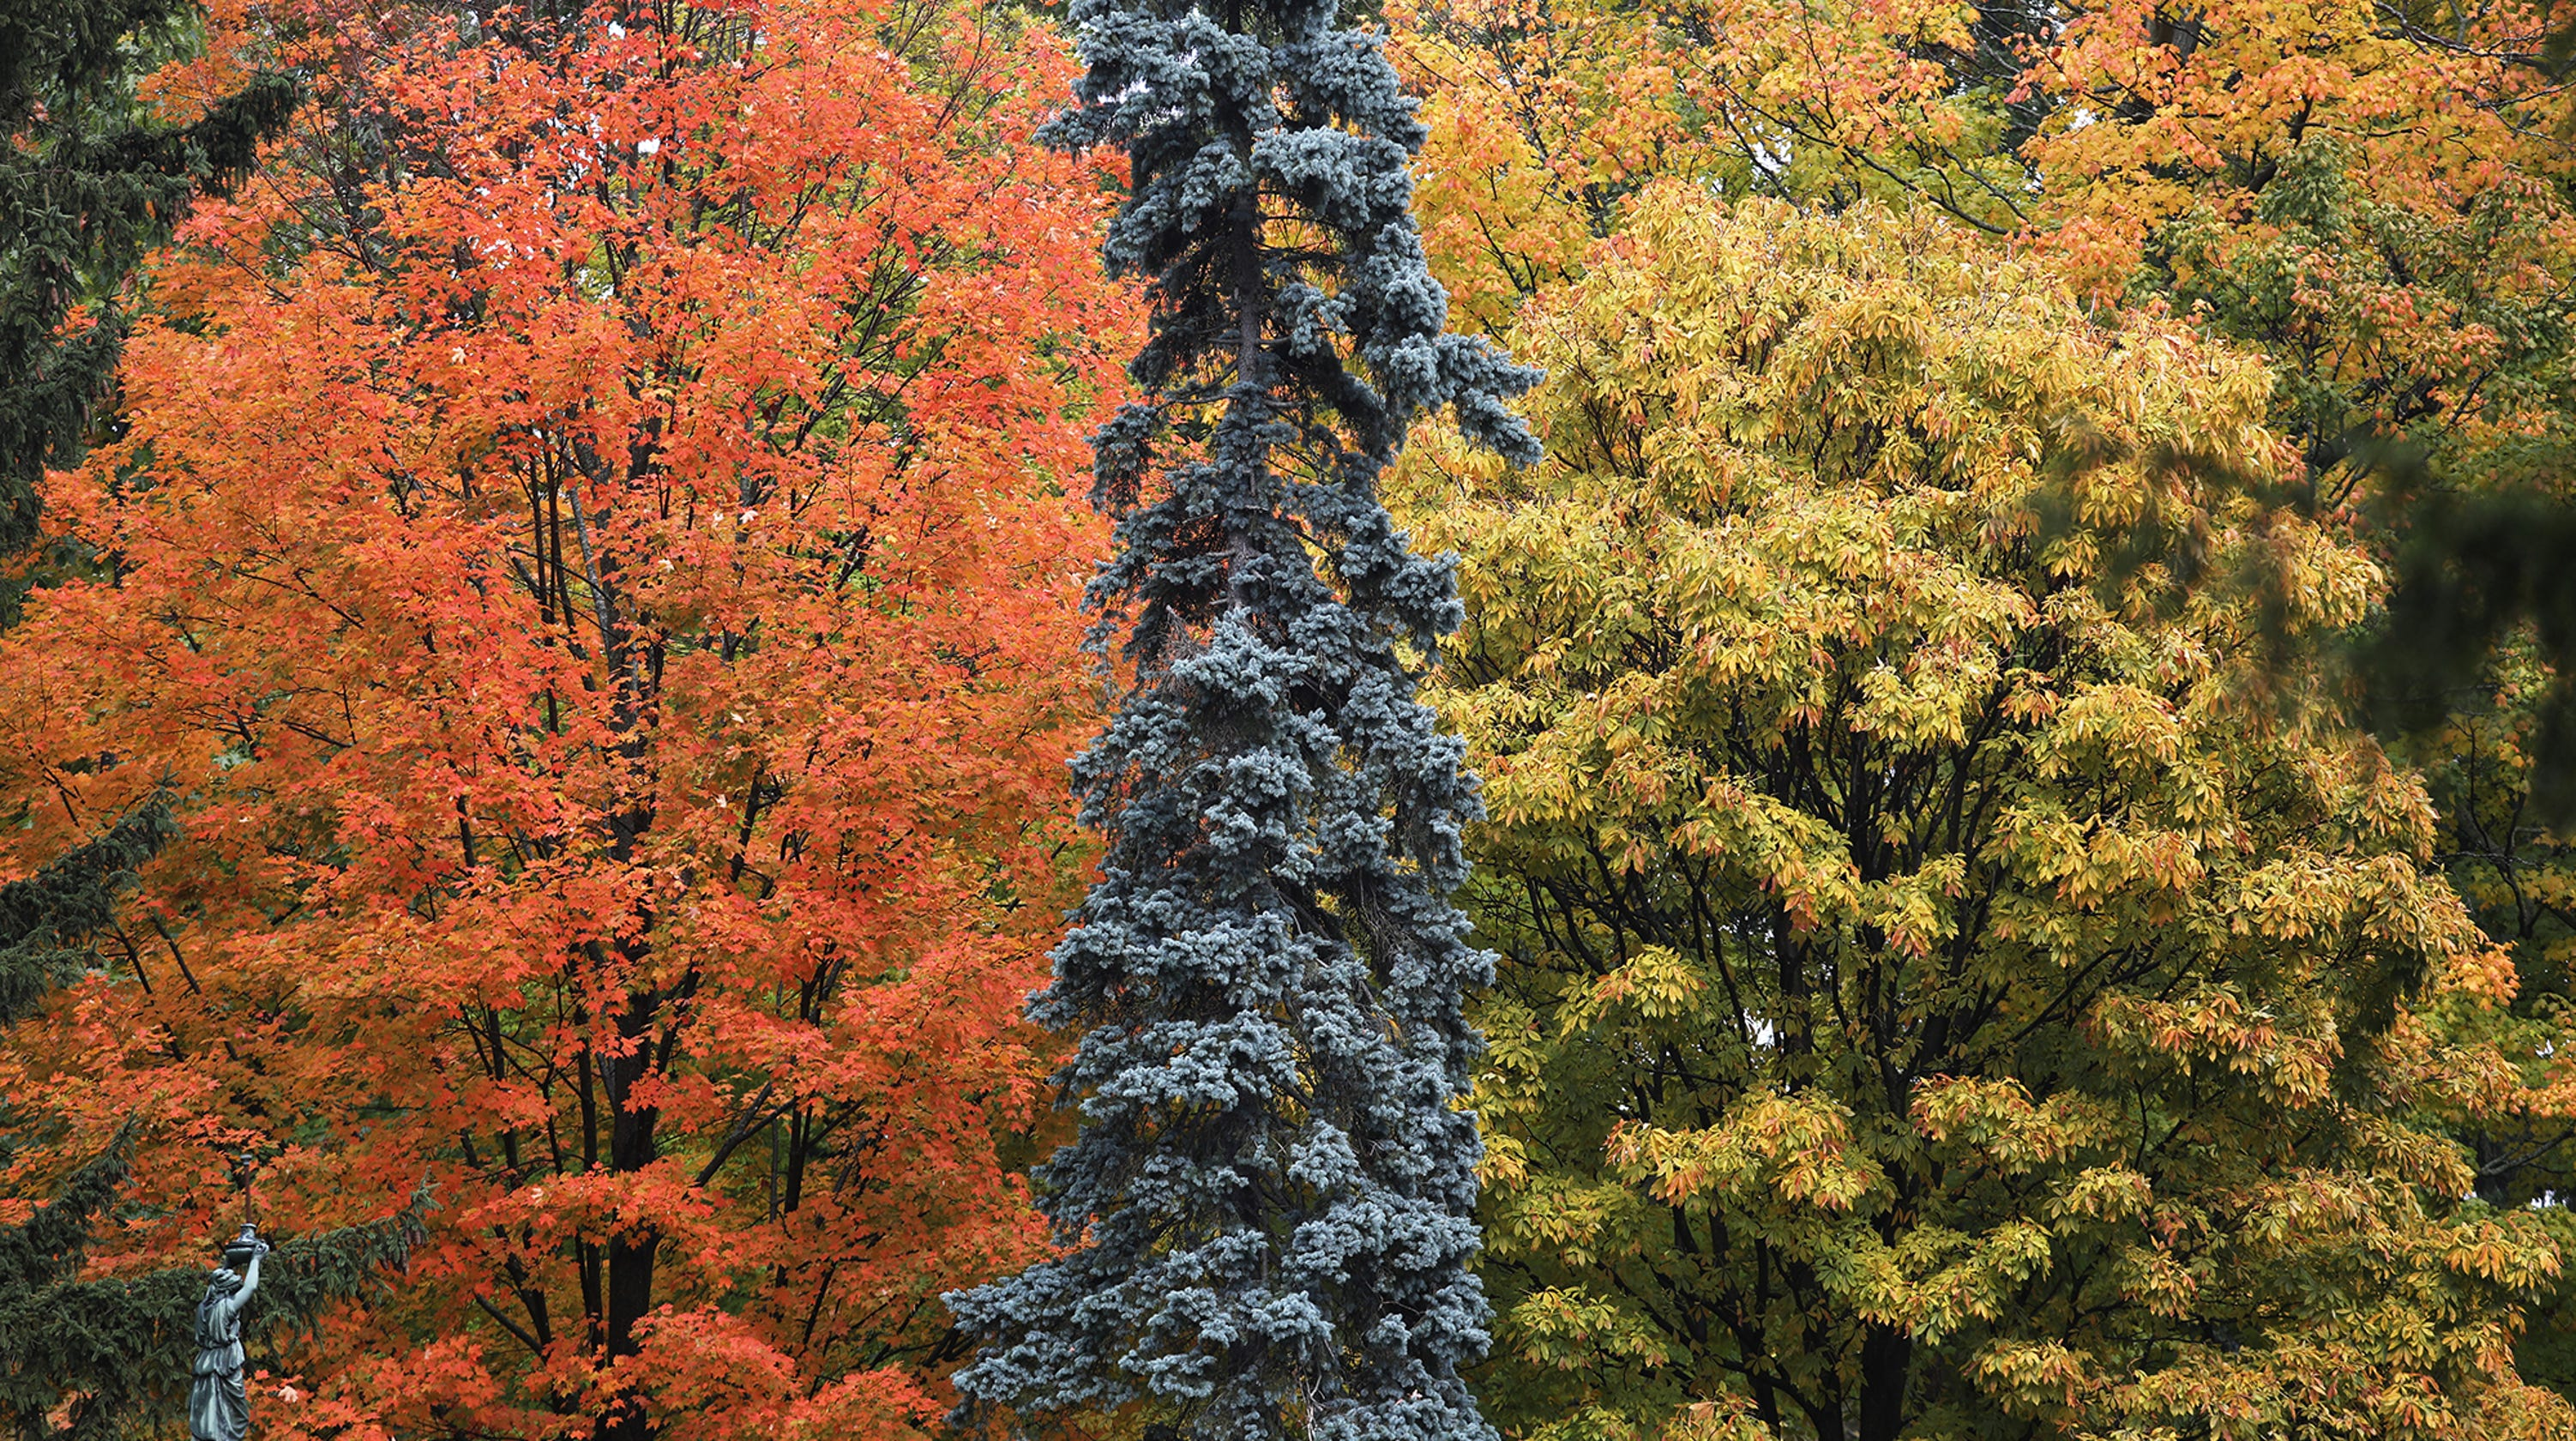 NY Fall Foliage 2018: Where The Colors Are, Week Of Oct